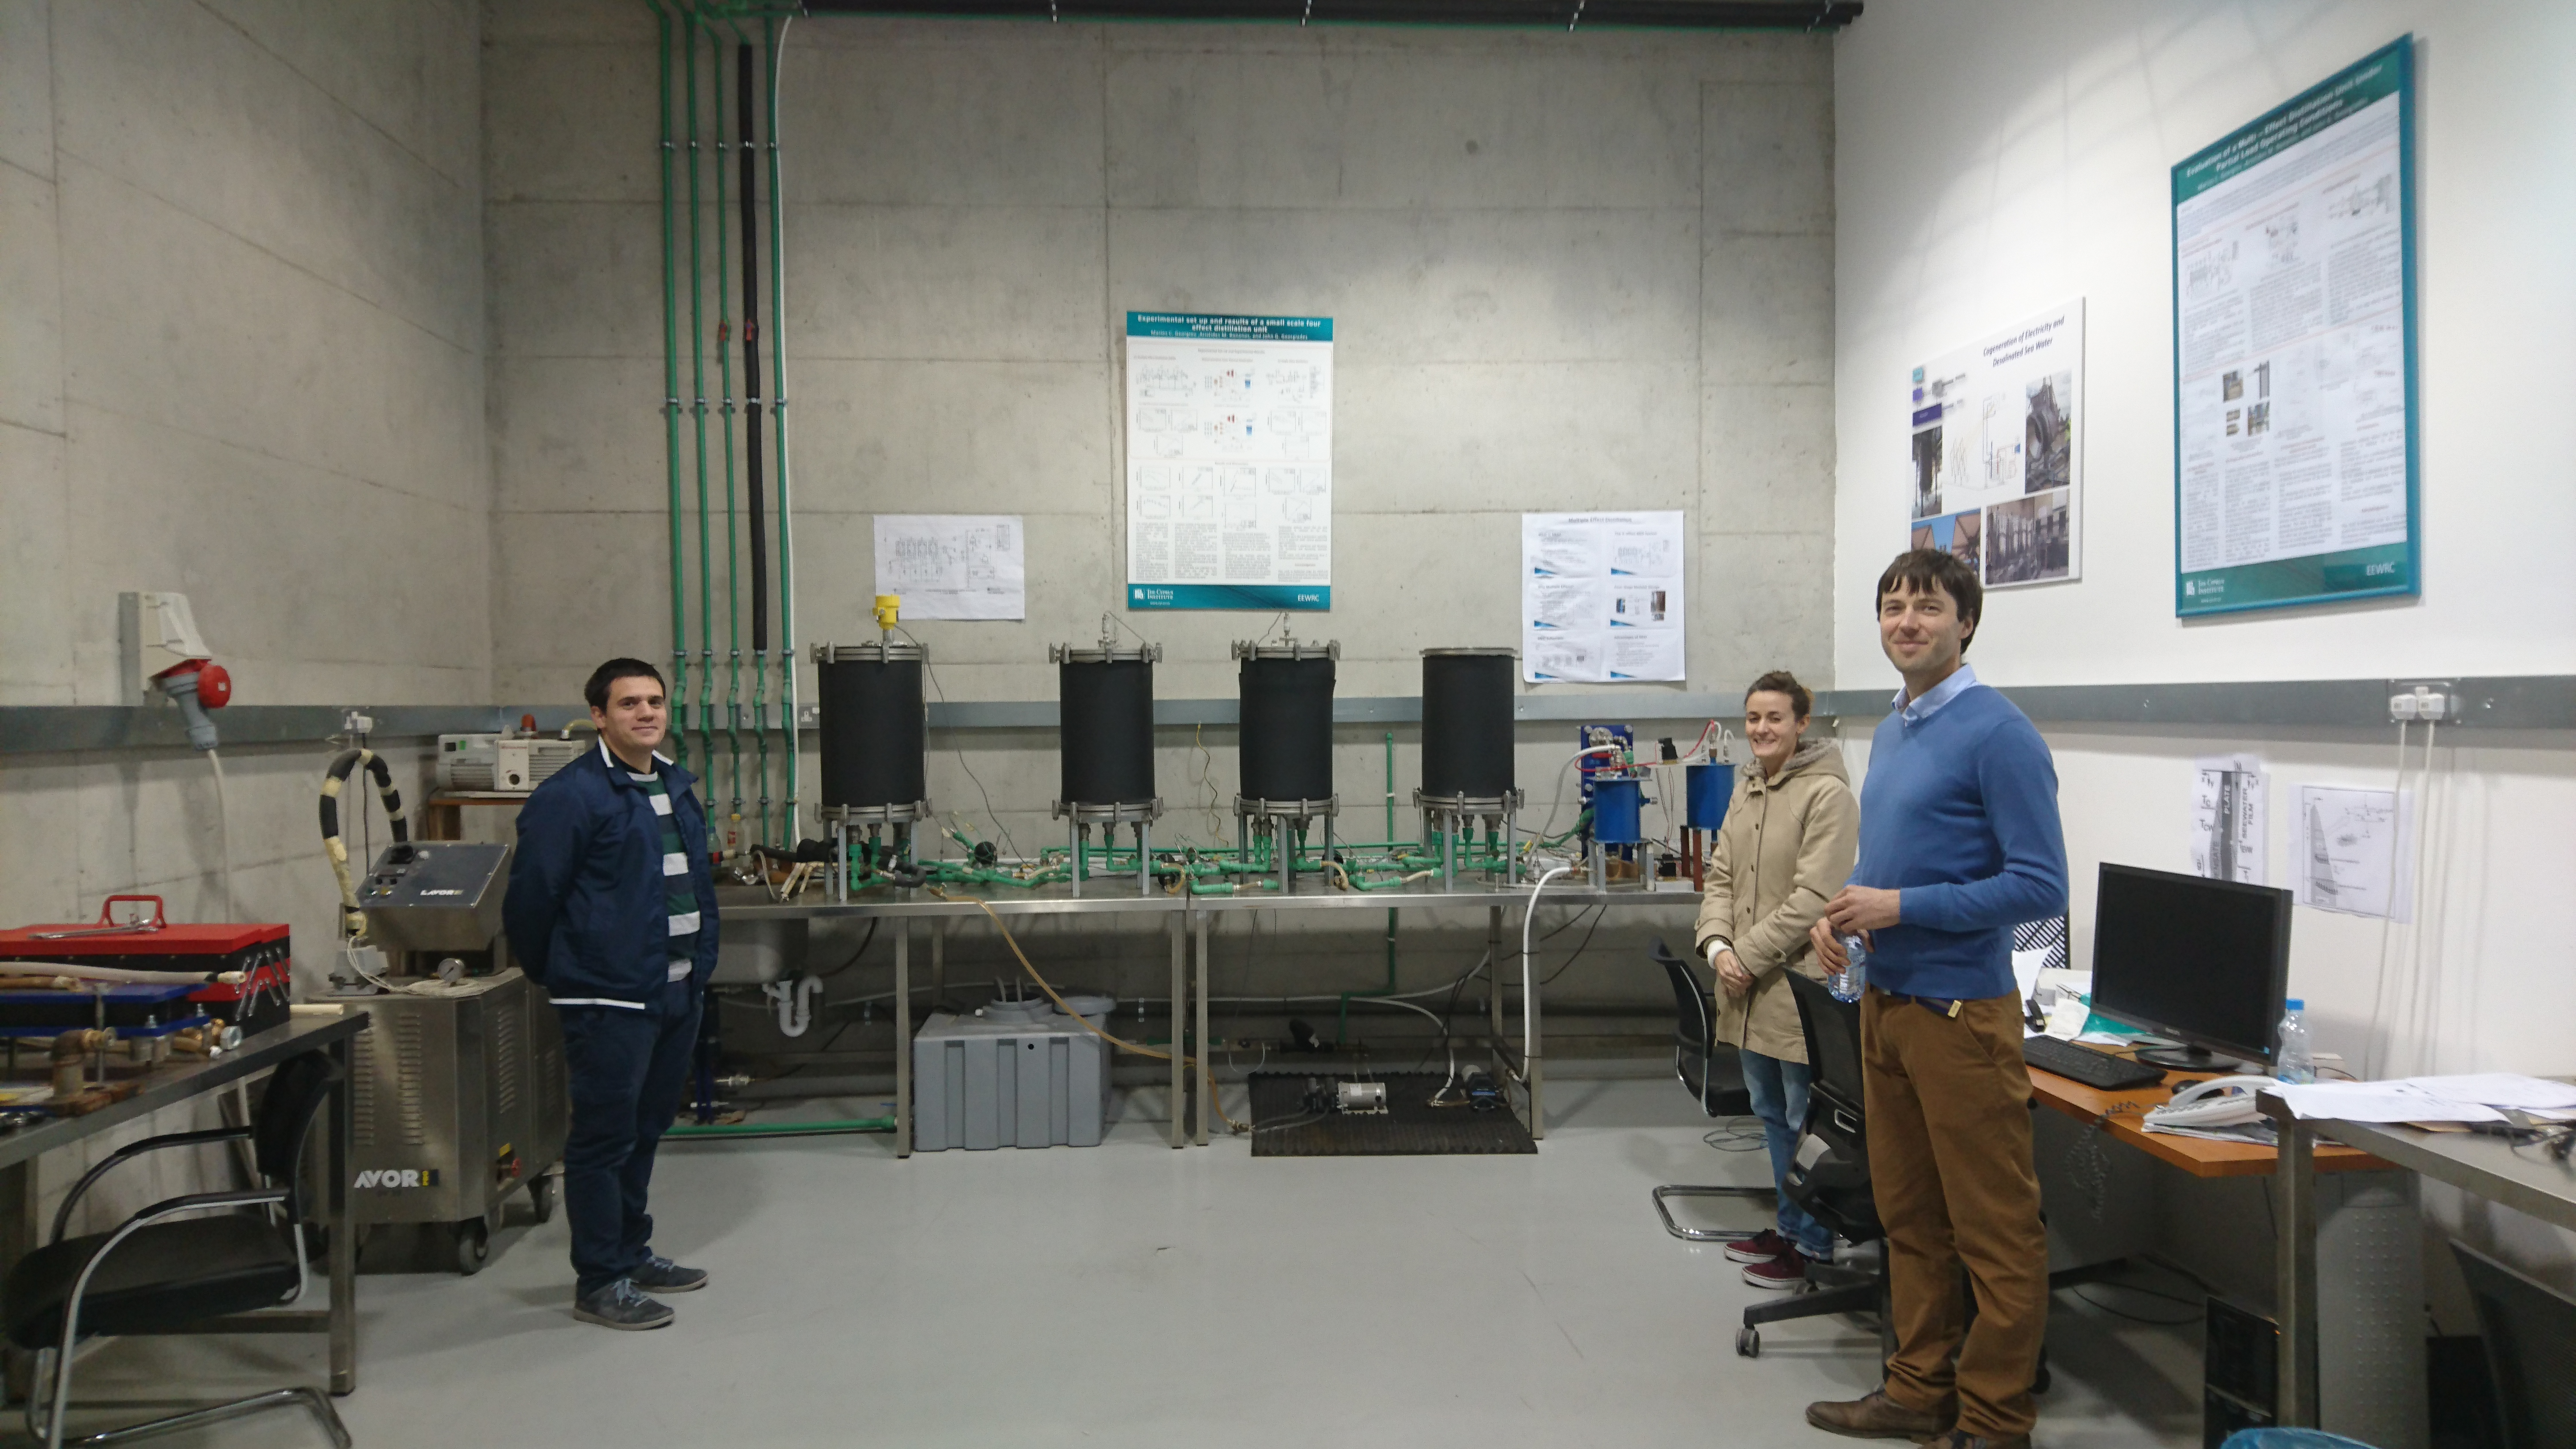 Cyprus institute thermal desalination laboratory